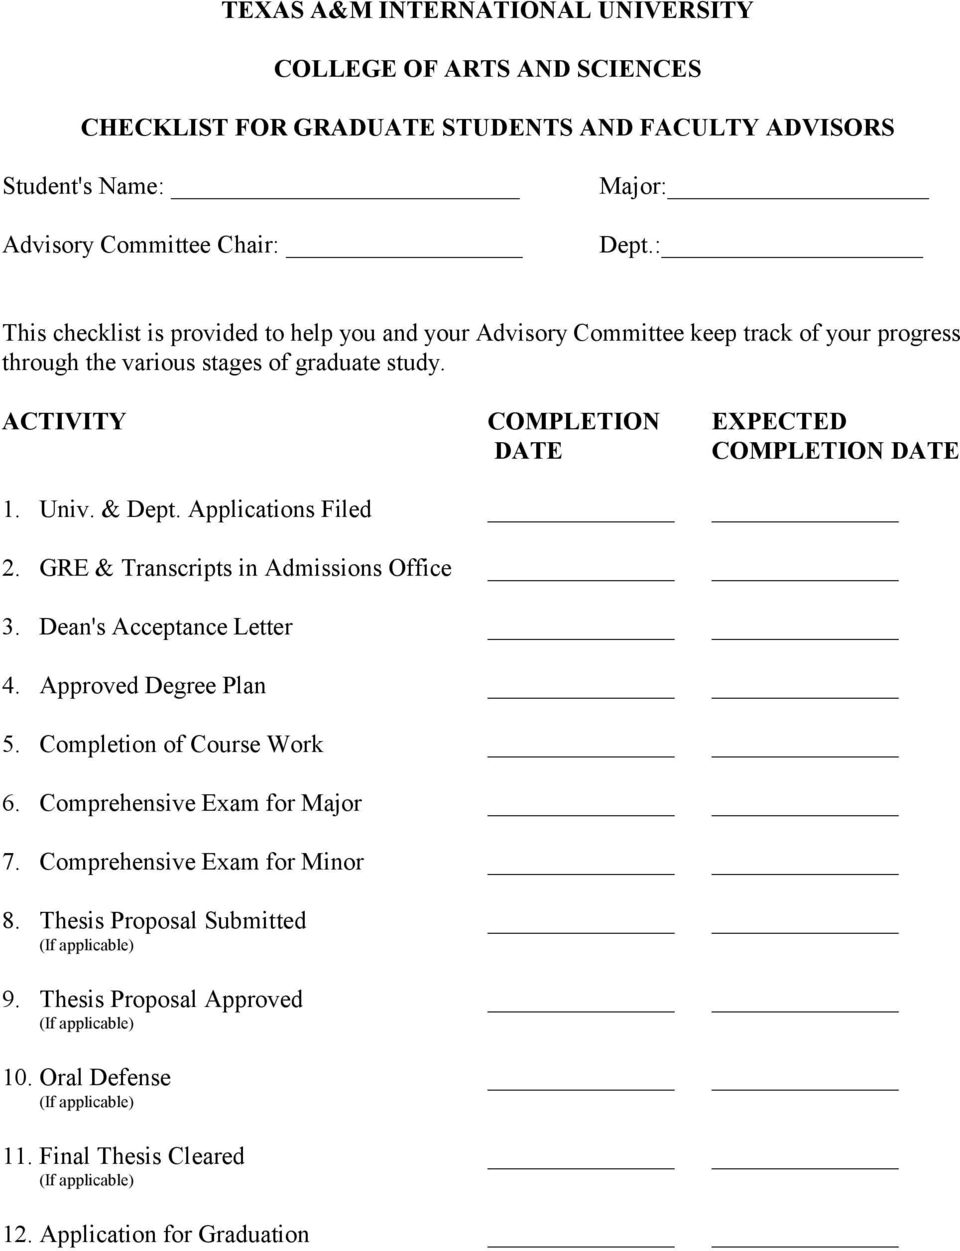 Univ. & Dept. Applications Filed 2. GRE & Transcripts in Admissions Office 3. Dean's Acceptance Letter 4. Approved Degree Plan 5. Completion of Course Work 6. Comprehensive Exam for Major 7.